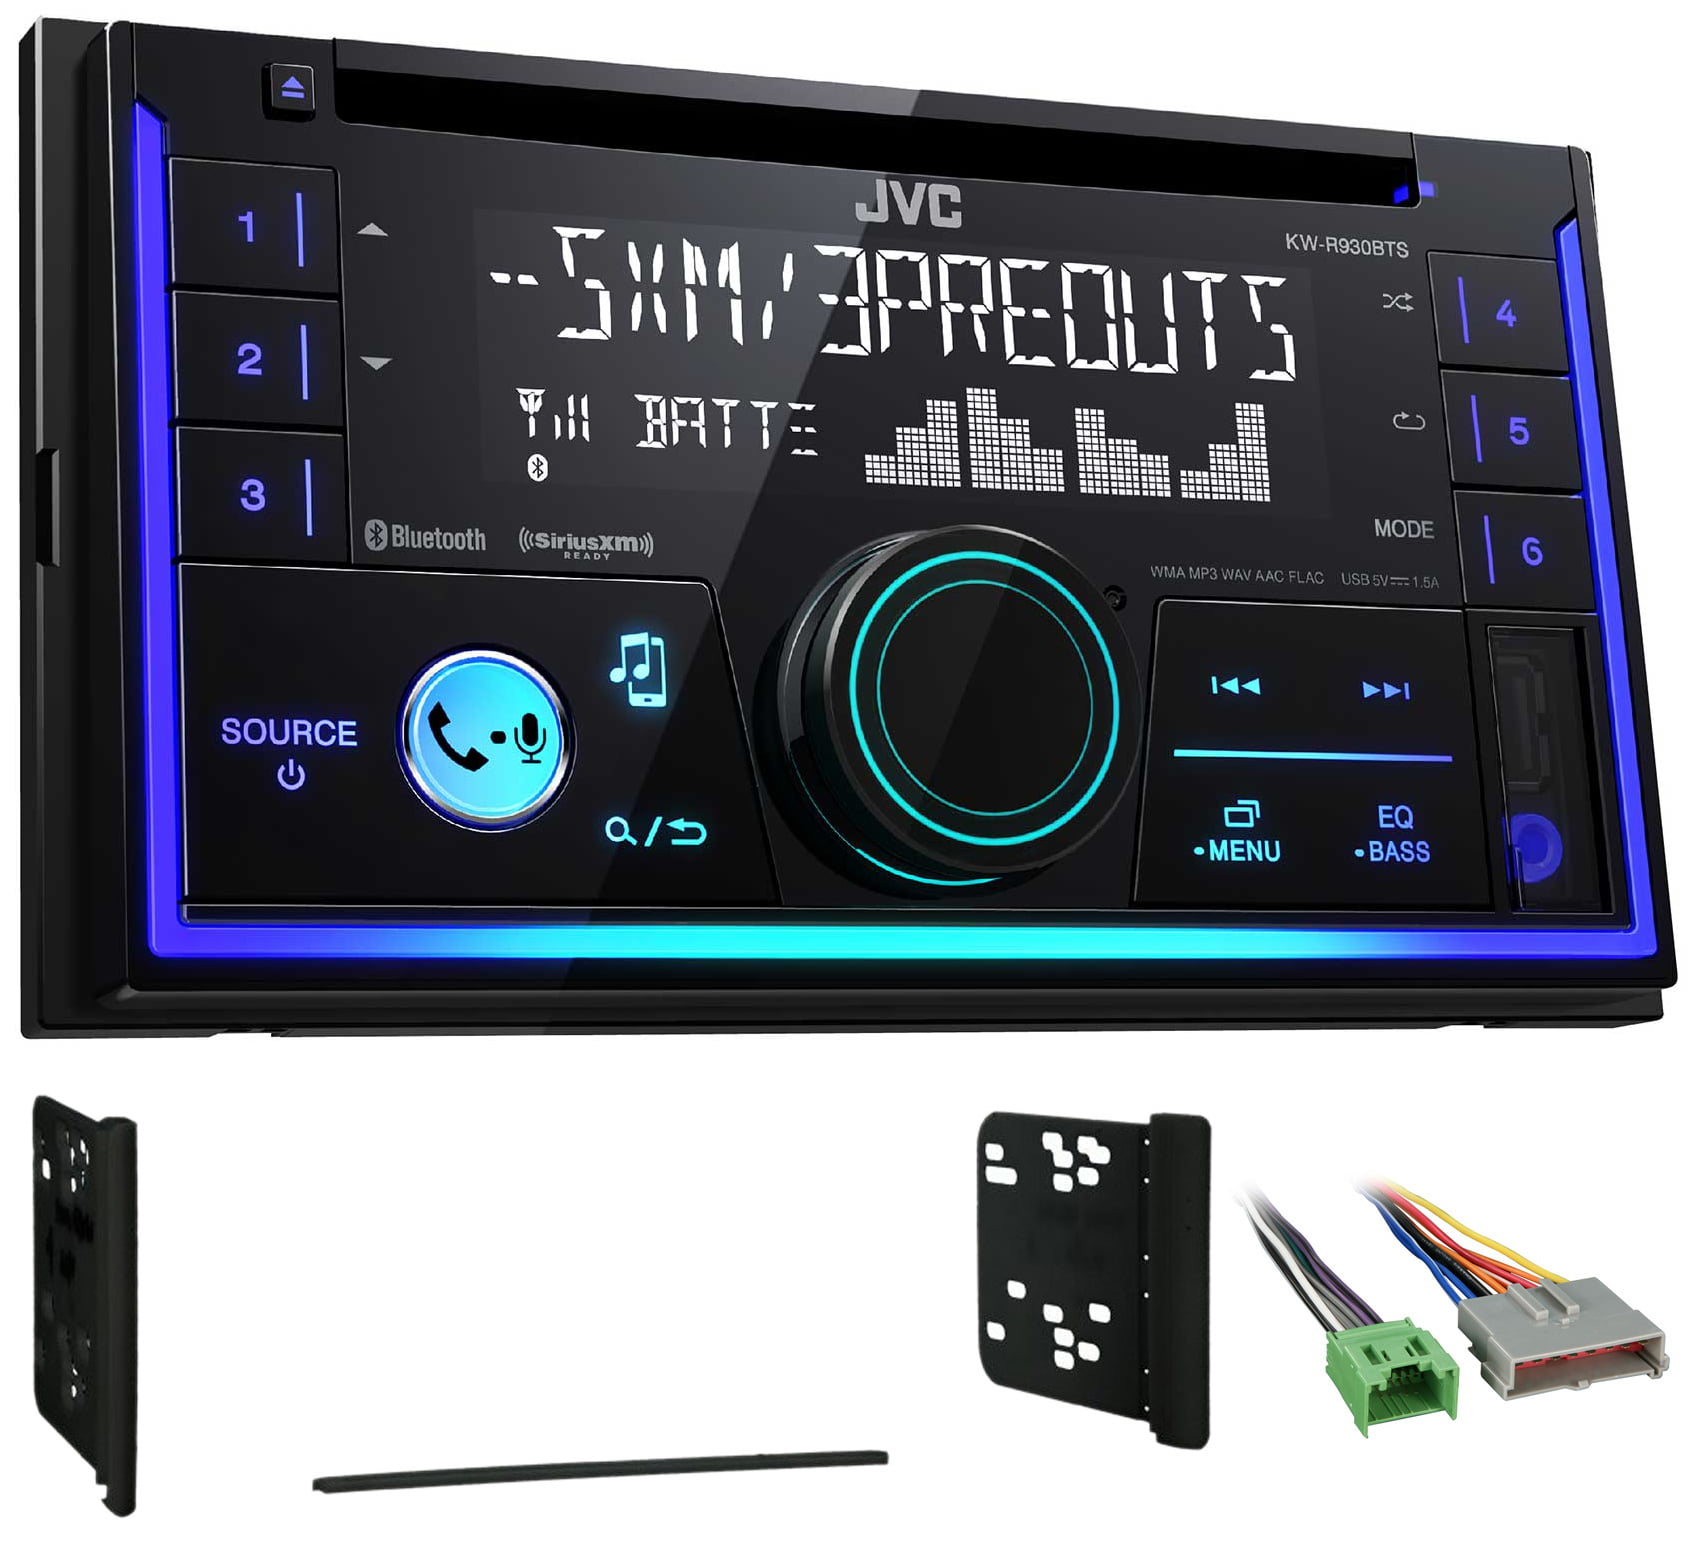 JVC Stereo CD Receiver w Bluetooth USB iPhone Sirius For 1995-1997 Ford Explorer by JVC